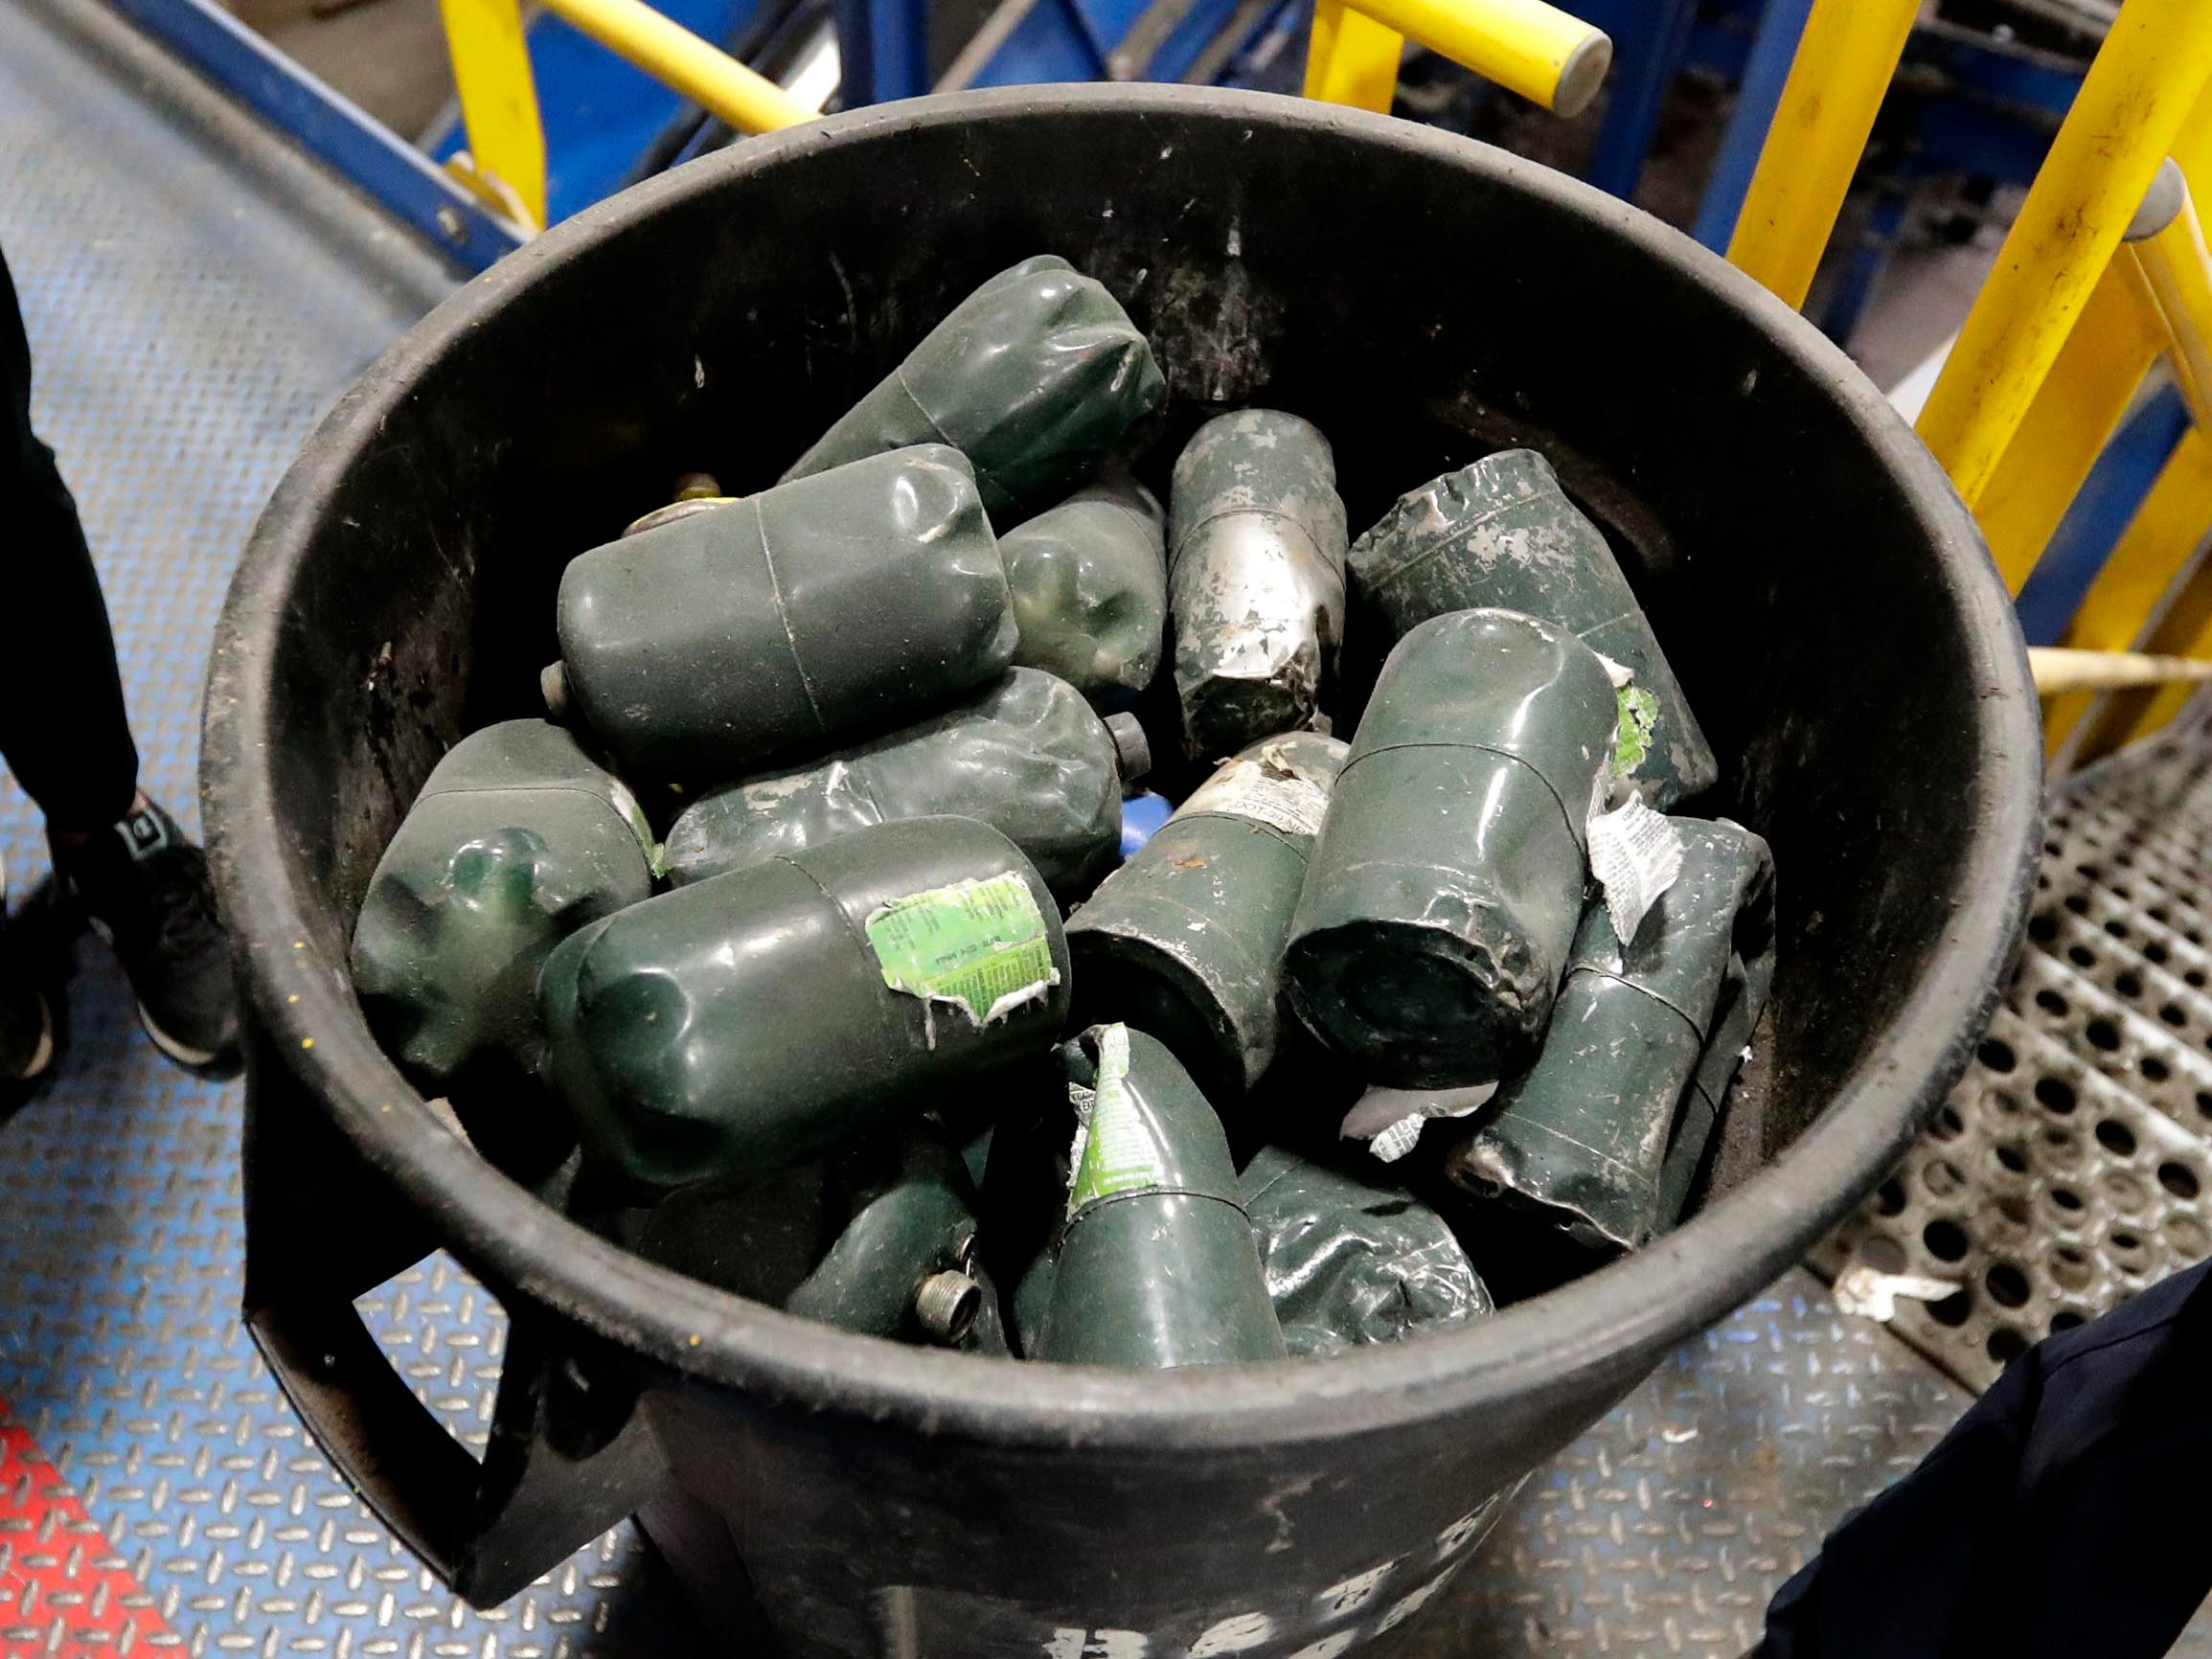 Residents put small propane tanks for camping stoves in recycling bins. These items can explode and should not should be recycled.